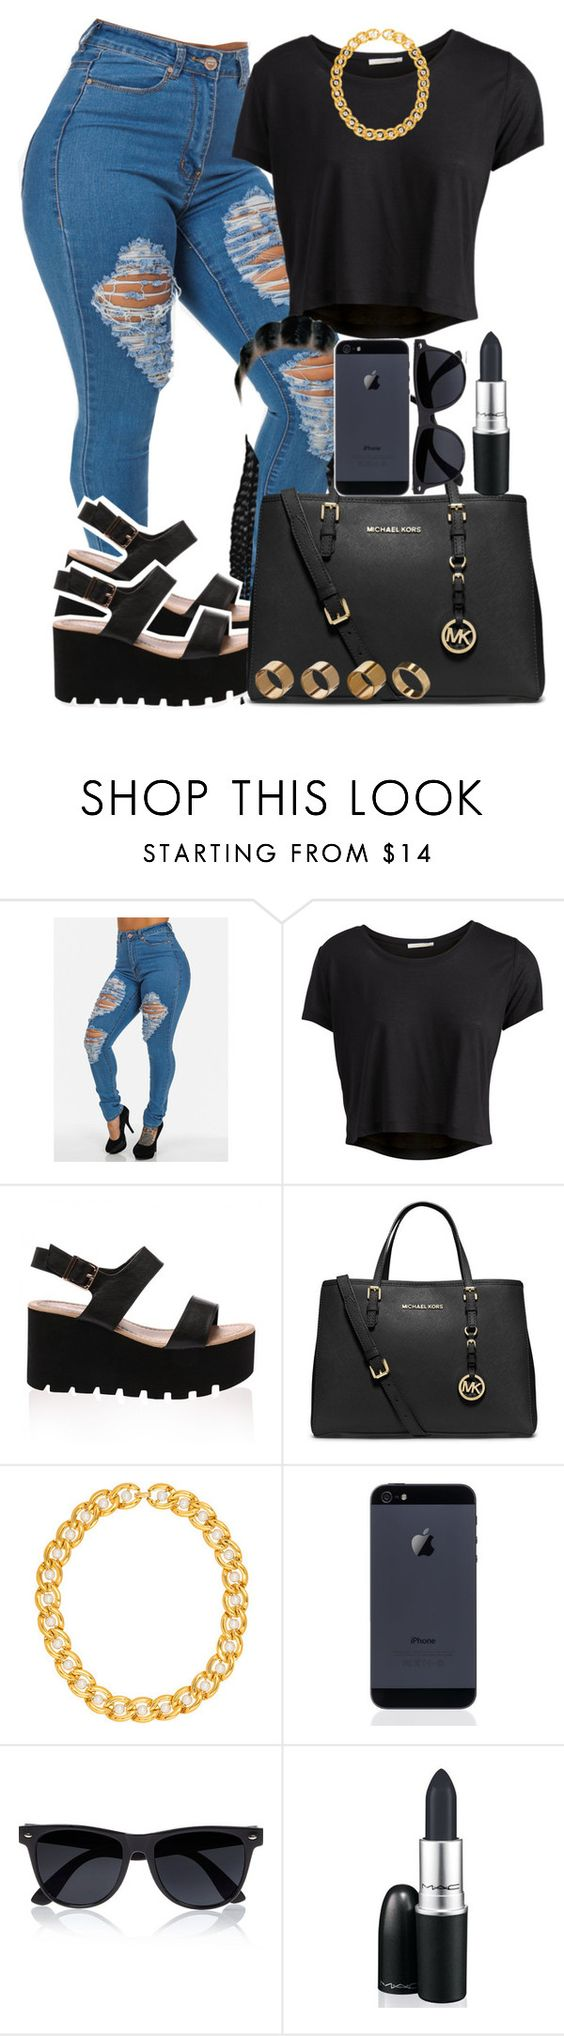 """""""Feeling a little Dark"""" by daqveen ❤ liked on Polyvore featuring Pieces, MICHAEL Michael Kors, River Island, M.A.C and Warehouse"""